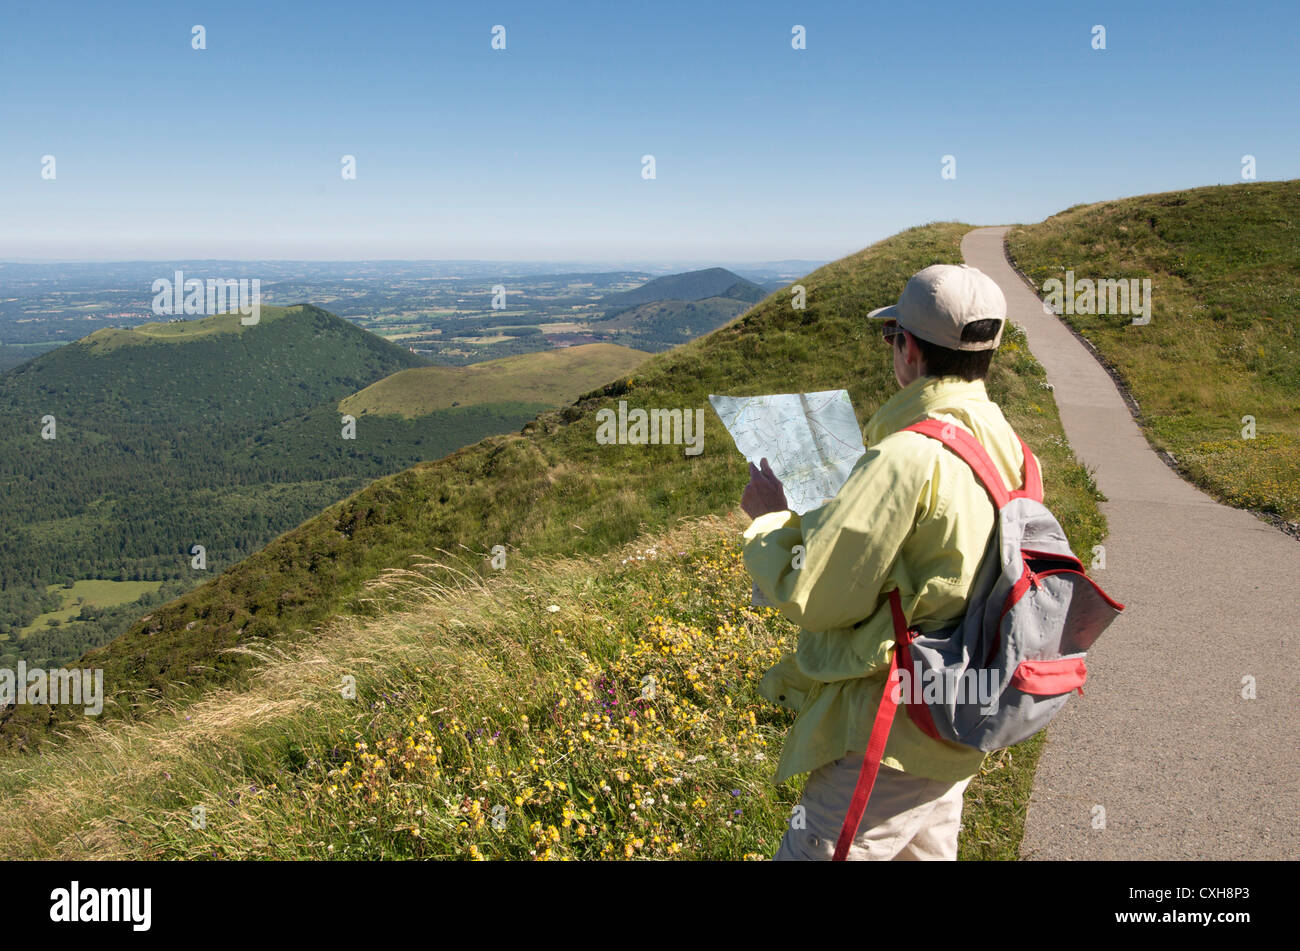 Hiker on the Puy de Dome looking at the volcanic landscape of the Chaine des Puys, Auvergne, France - Stock Image